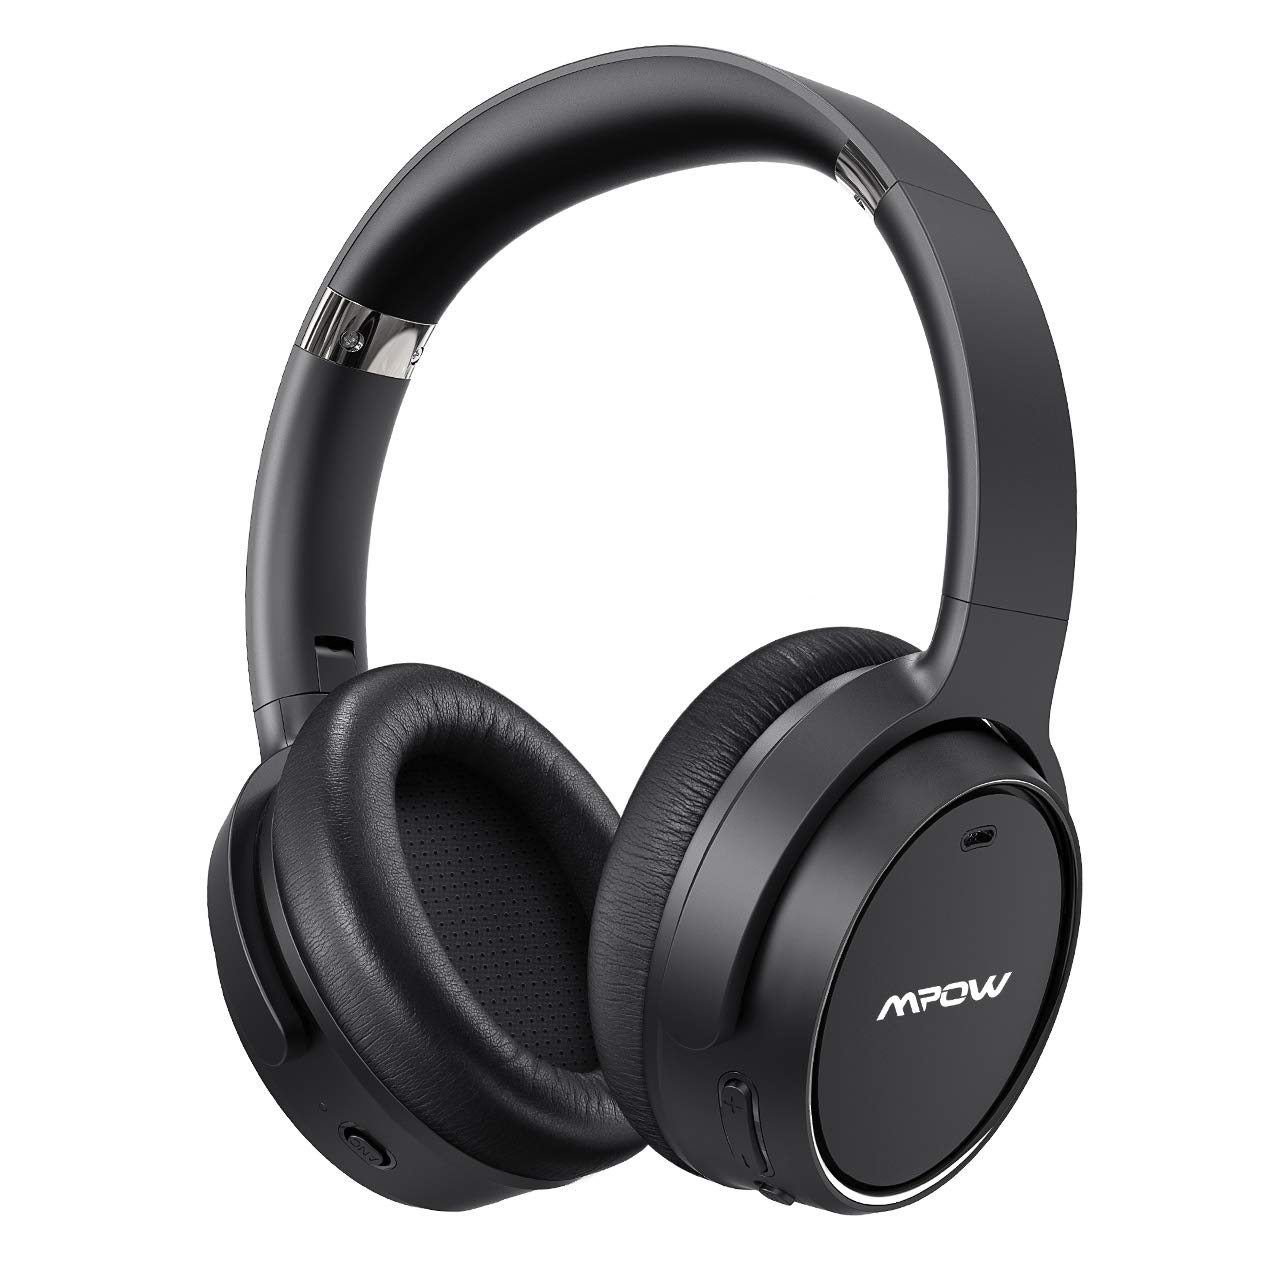 Mpow H19 Hybrid Noise Cancelling Headphones, [Upgraded] Bluetooth 5.0 Over Ear Wireless Headphones with 30H Playtime, Deep Bass, CVC 6.0 Microphone, ANC Headphones for Travel Work